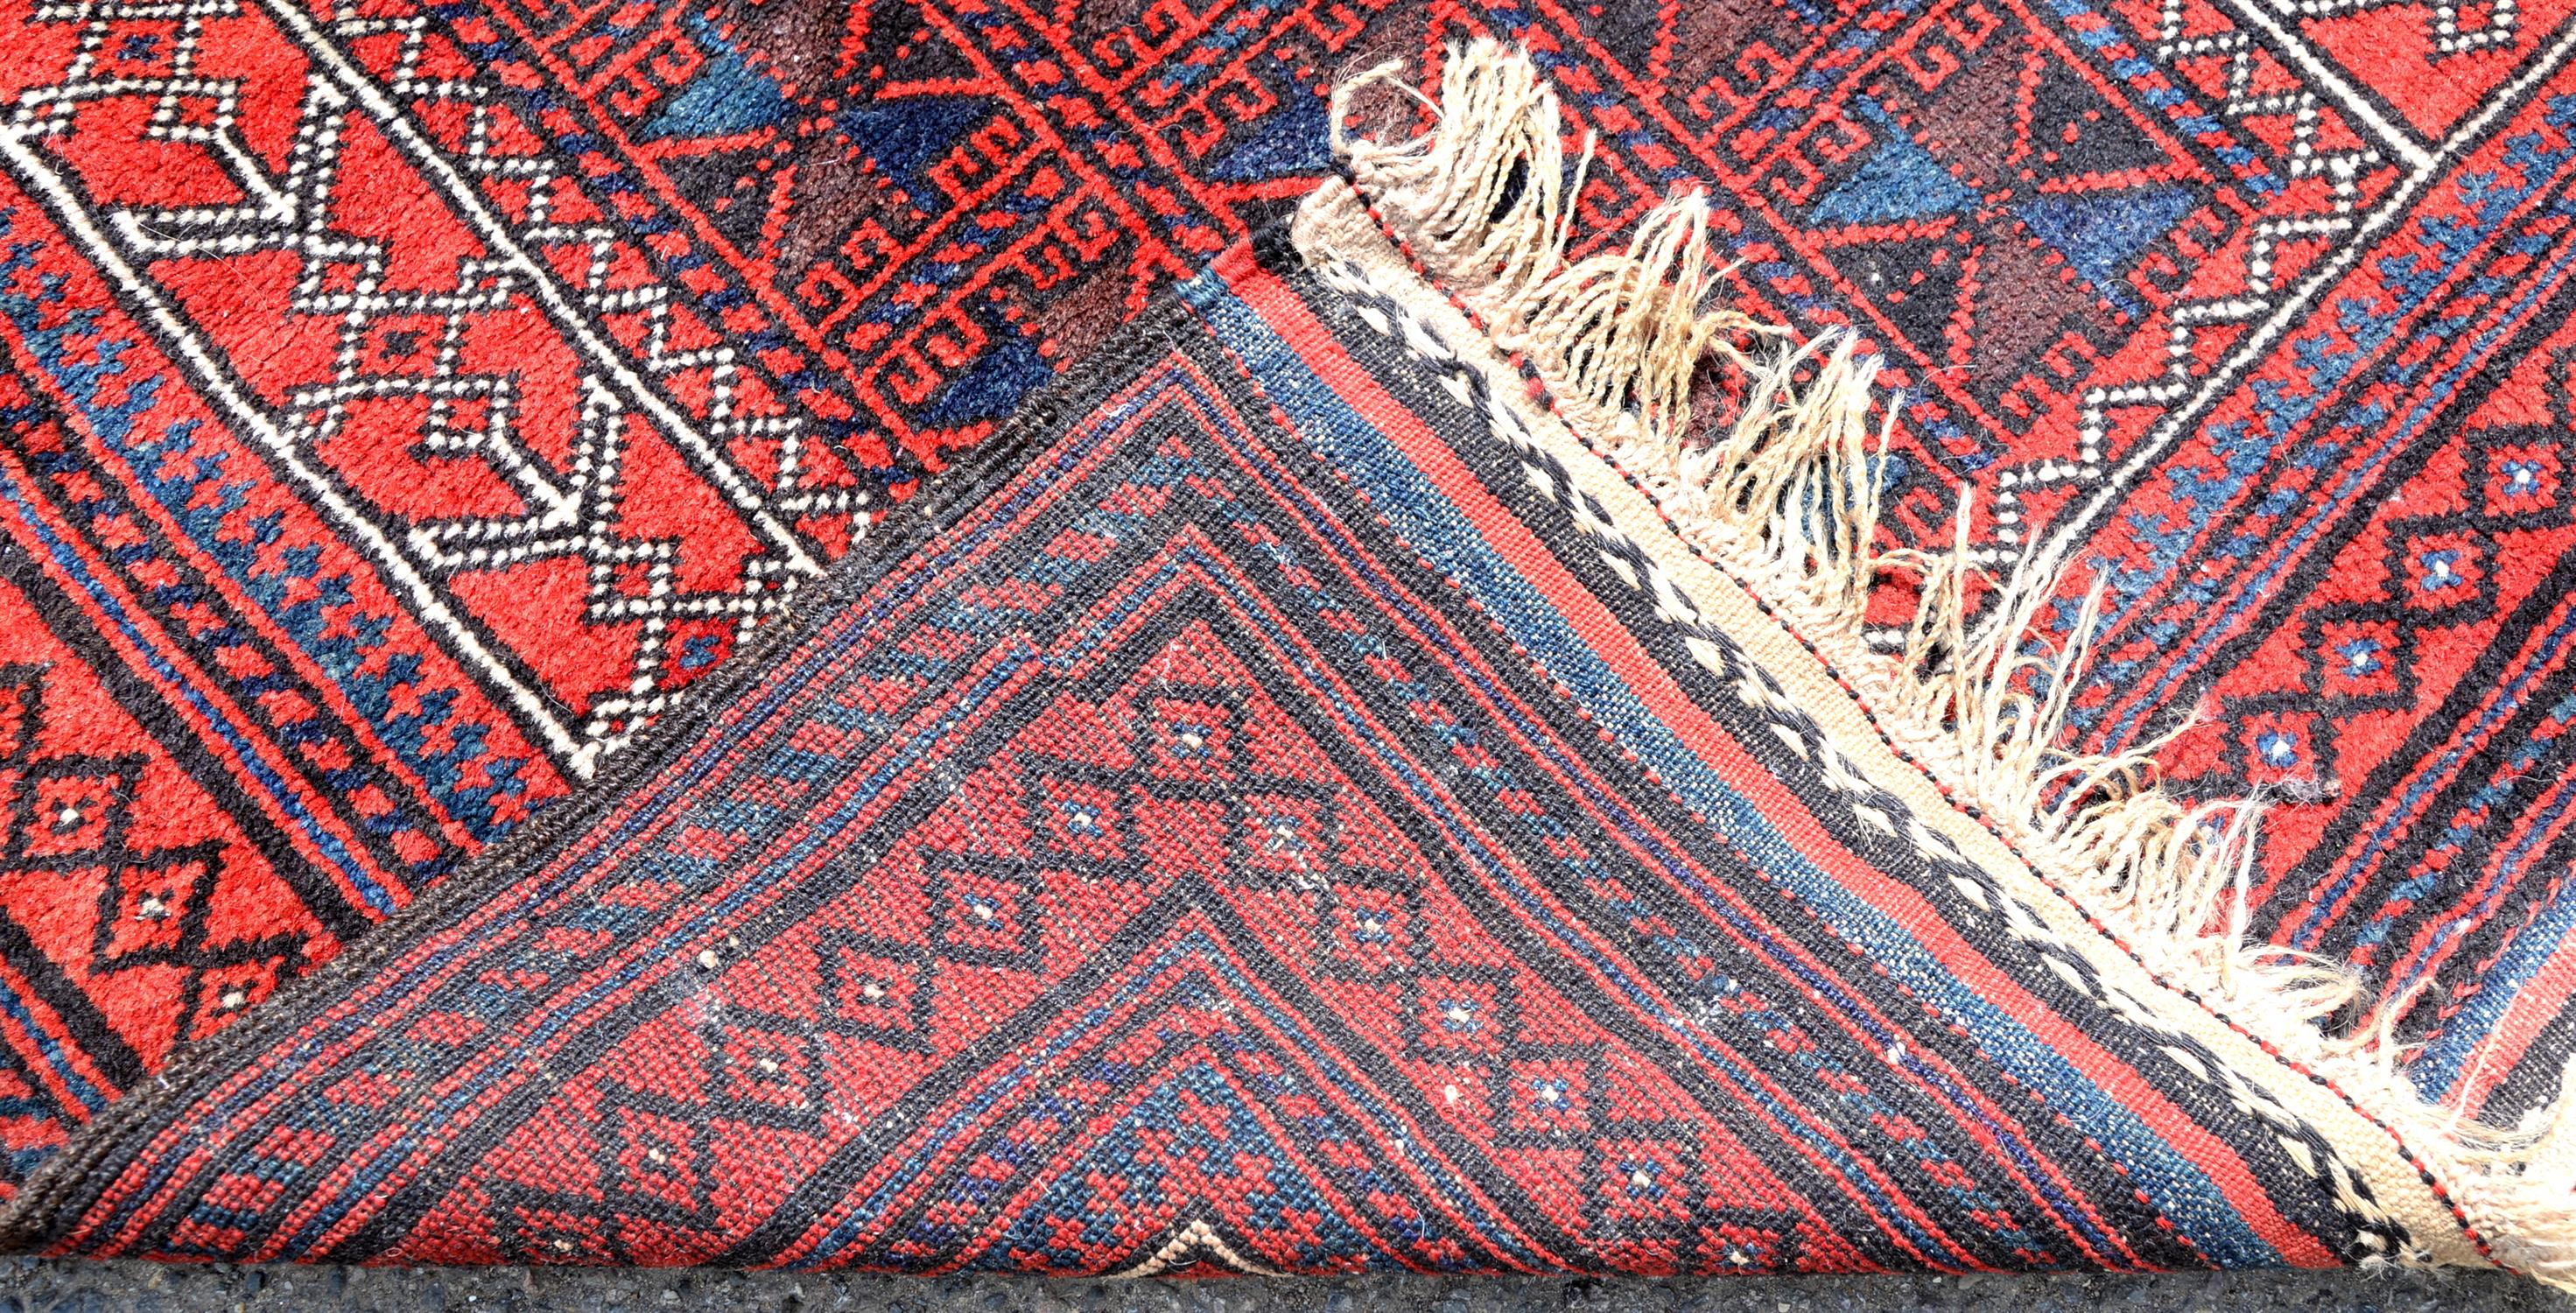 Persian red ground prayer rug, with geometric design within geometric border, 126 x 91cm - Image 2 of 2